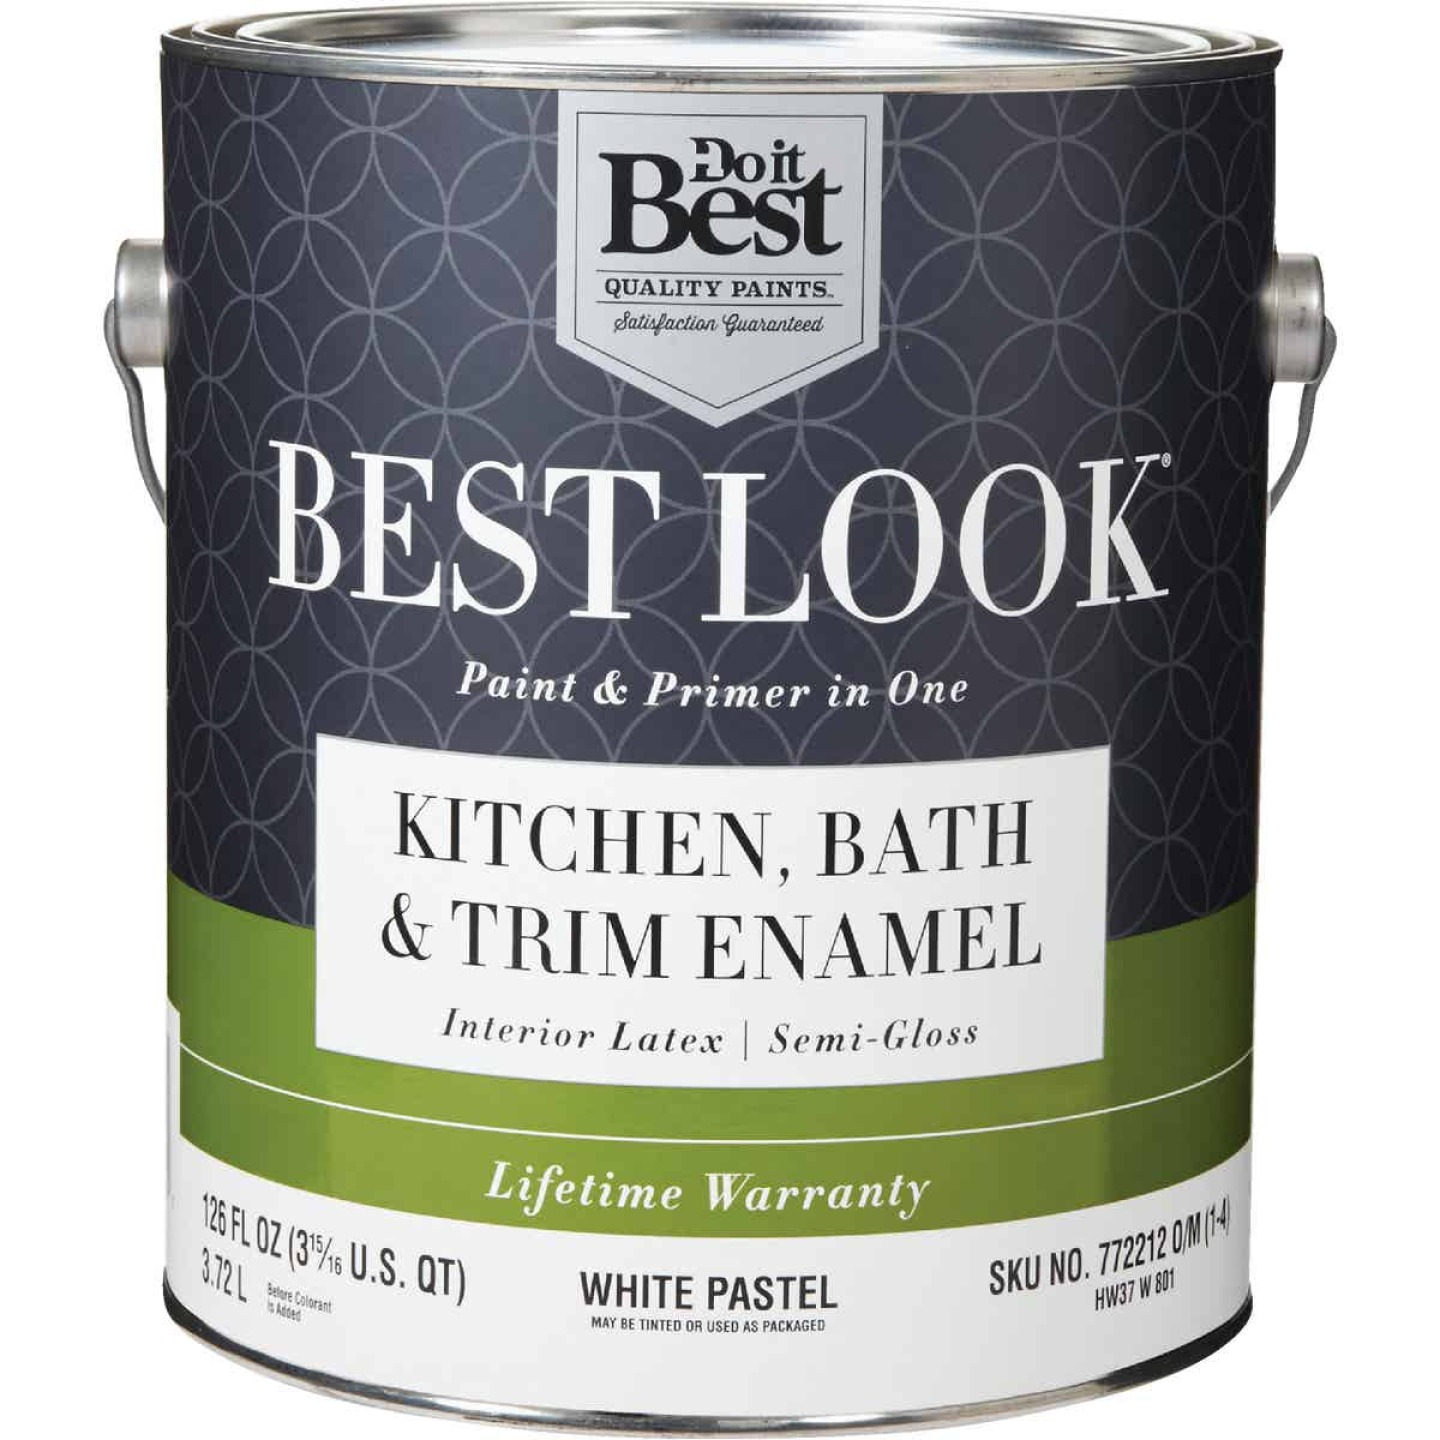 Best Look Latex Paint & Primer In One Kitchen Bath & Trim Semi-Gloss Interior Wall Paint, White-Pastel Base, 1 Gal. Image 1